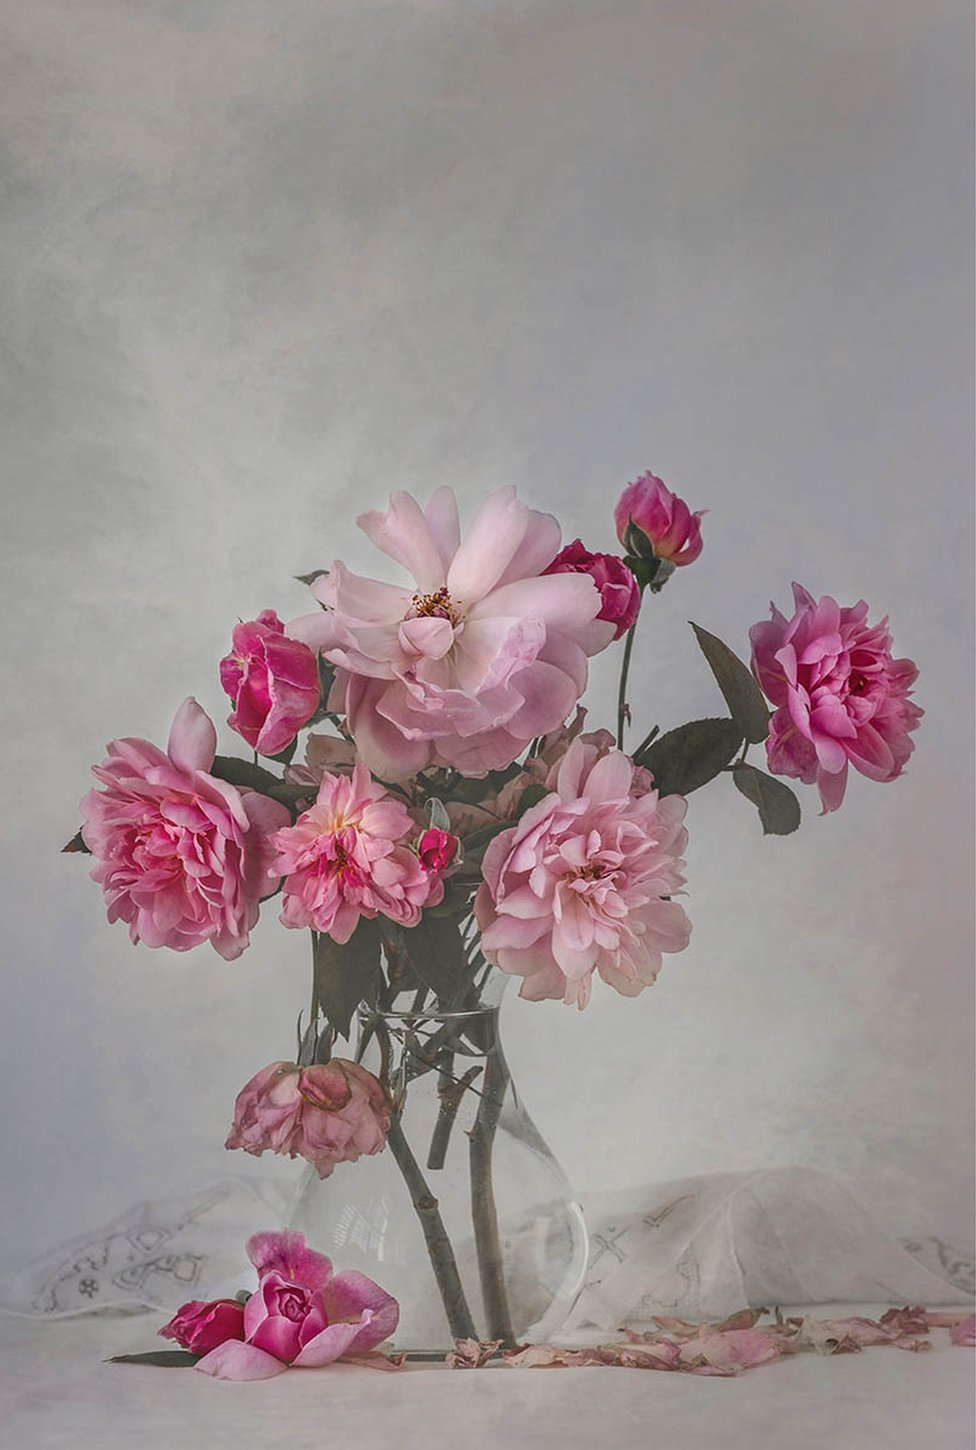 Fading pink roses in a vase with linen napkins on the table